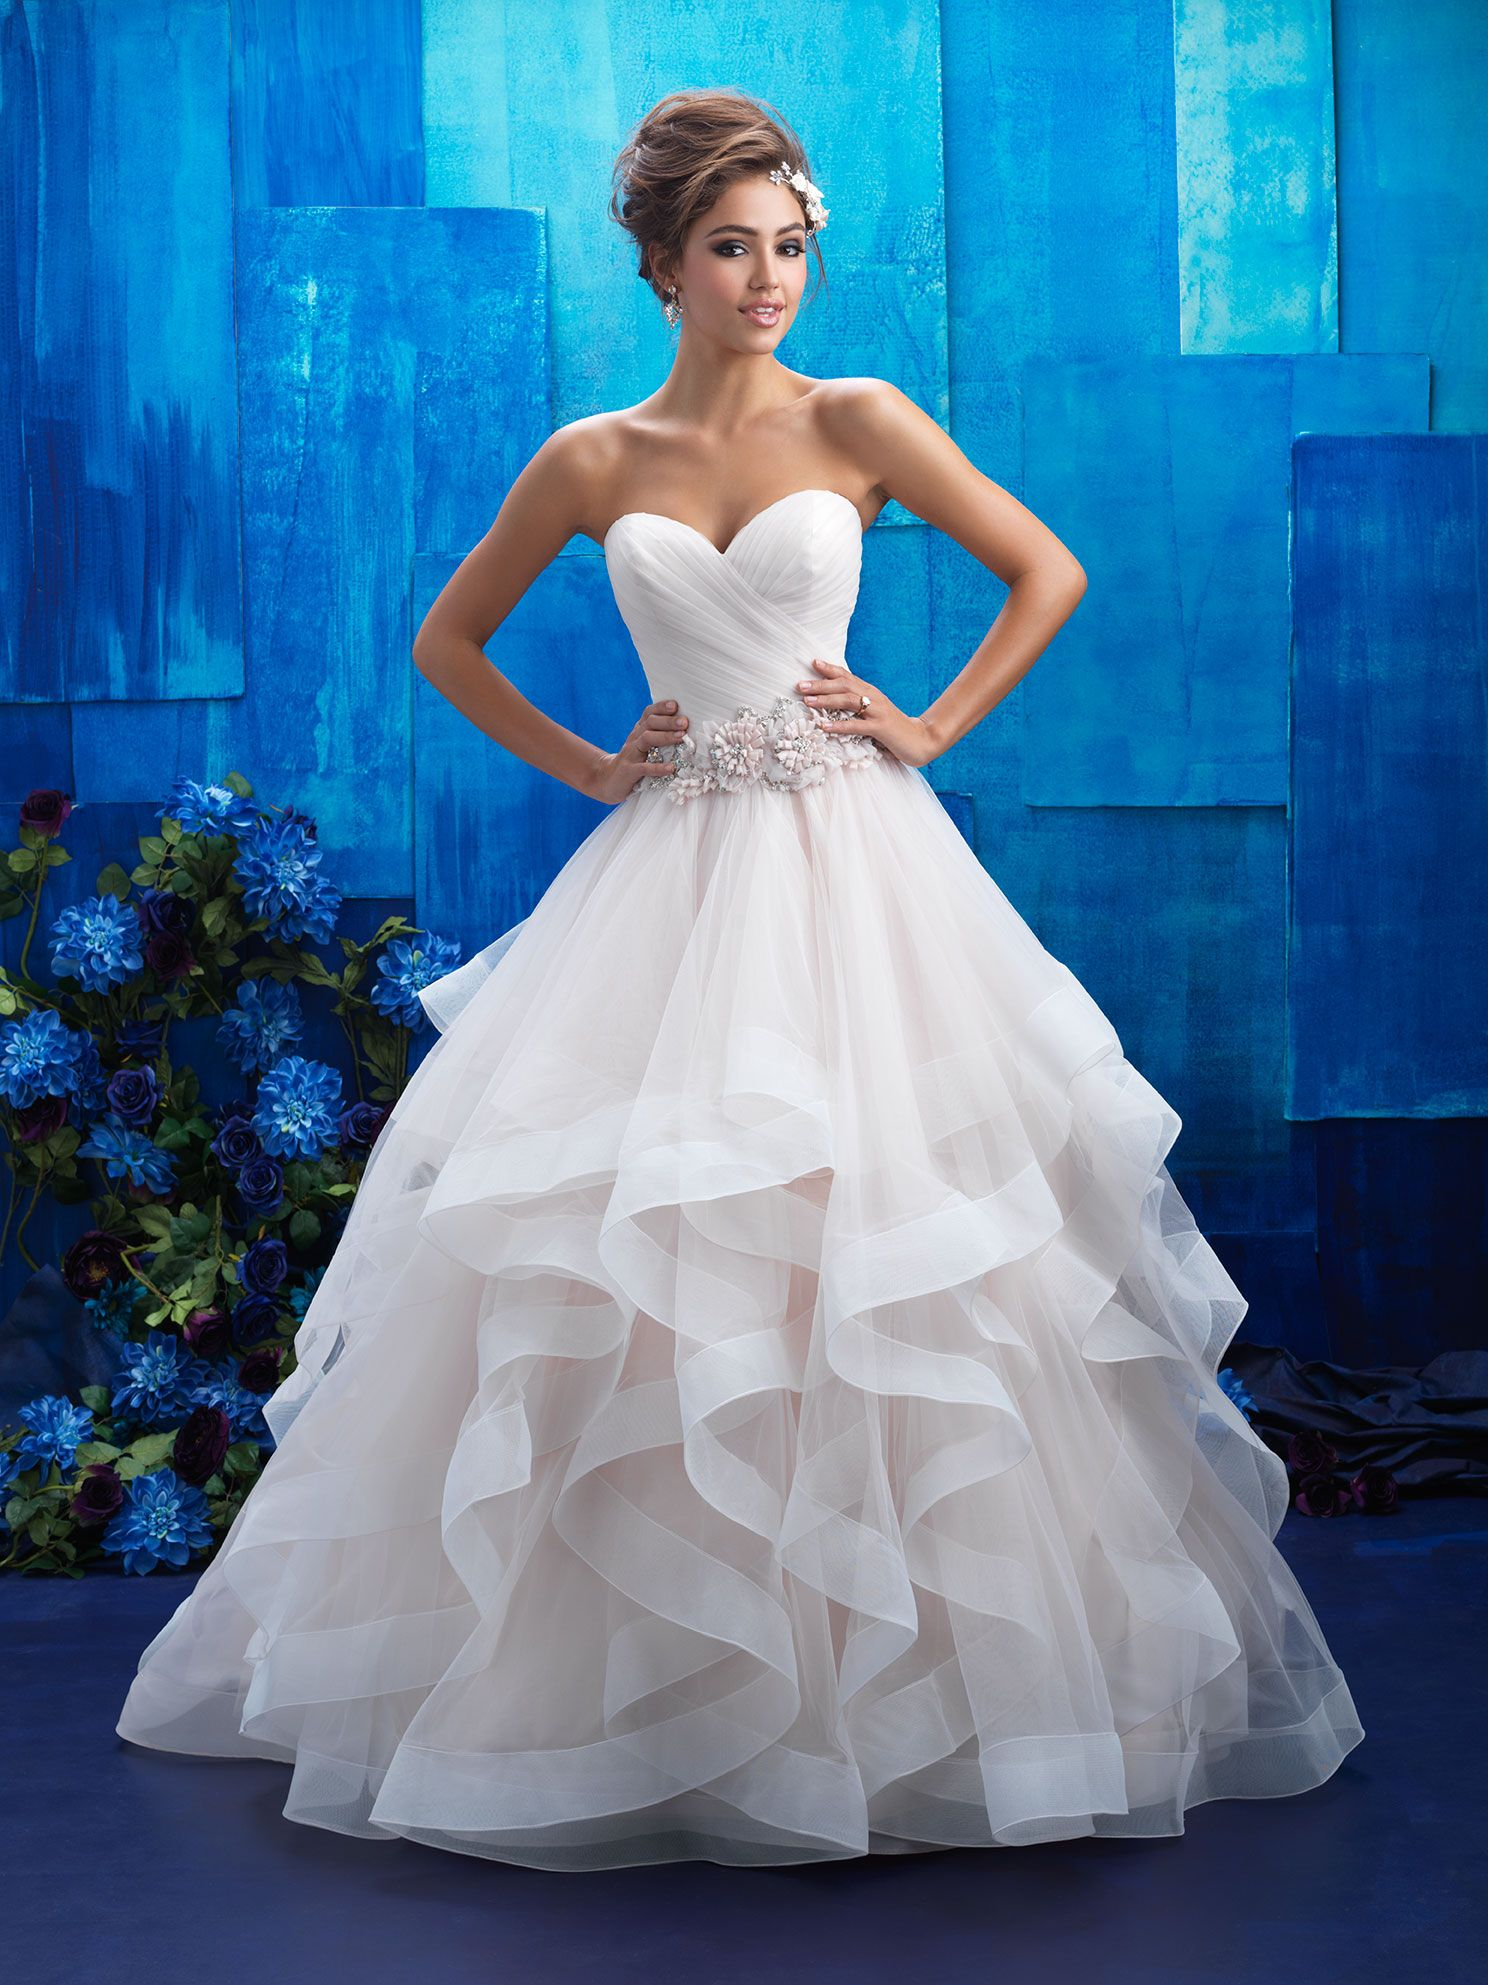 The sheer ruffles adorning this gown s ballgown skirt are both fluid and  structured dddcb35e29ed